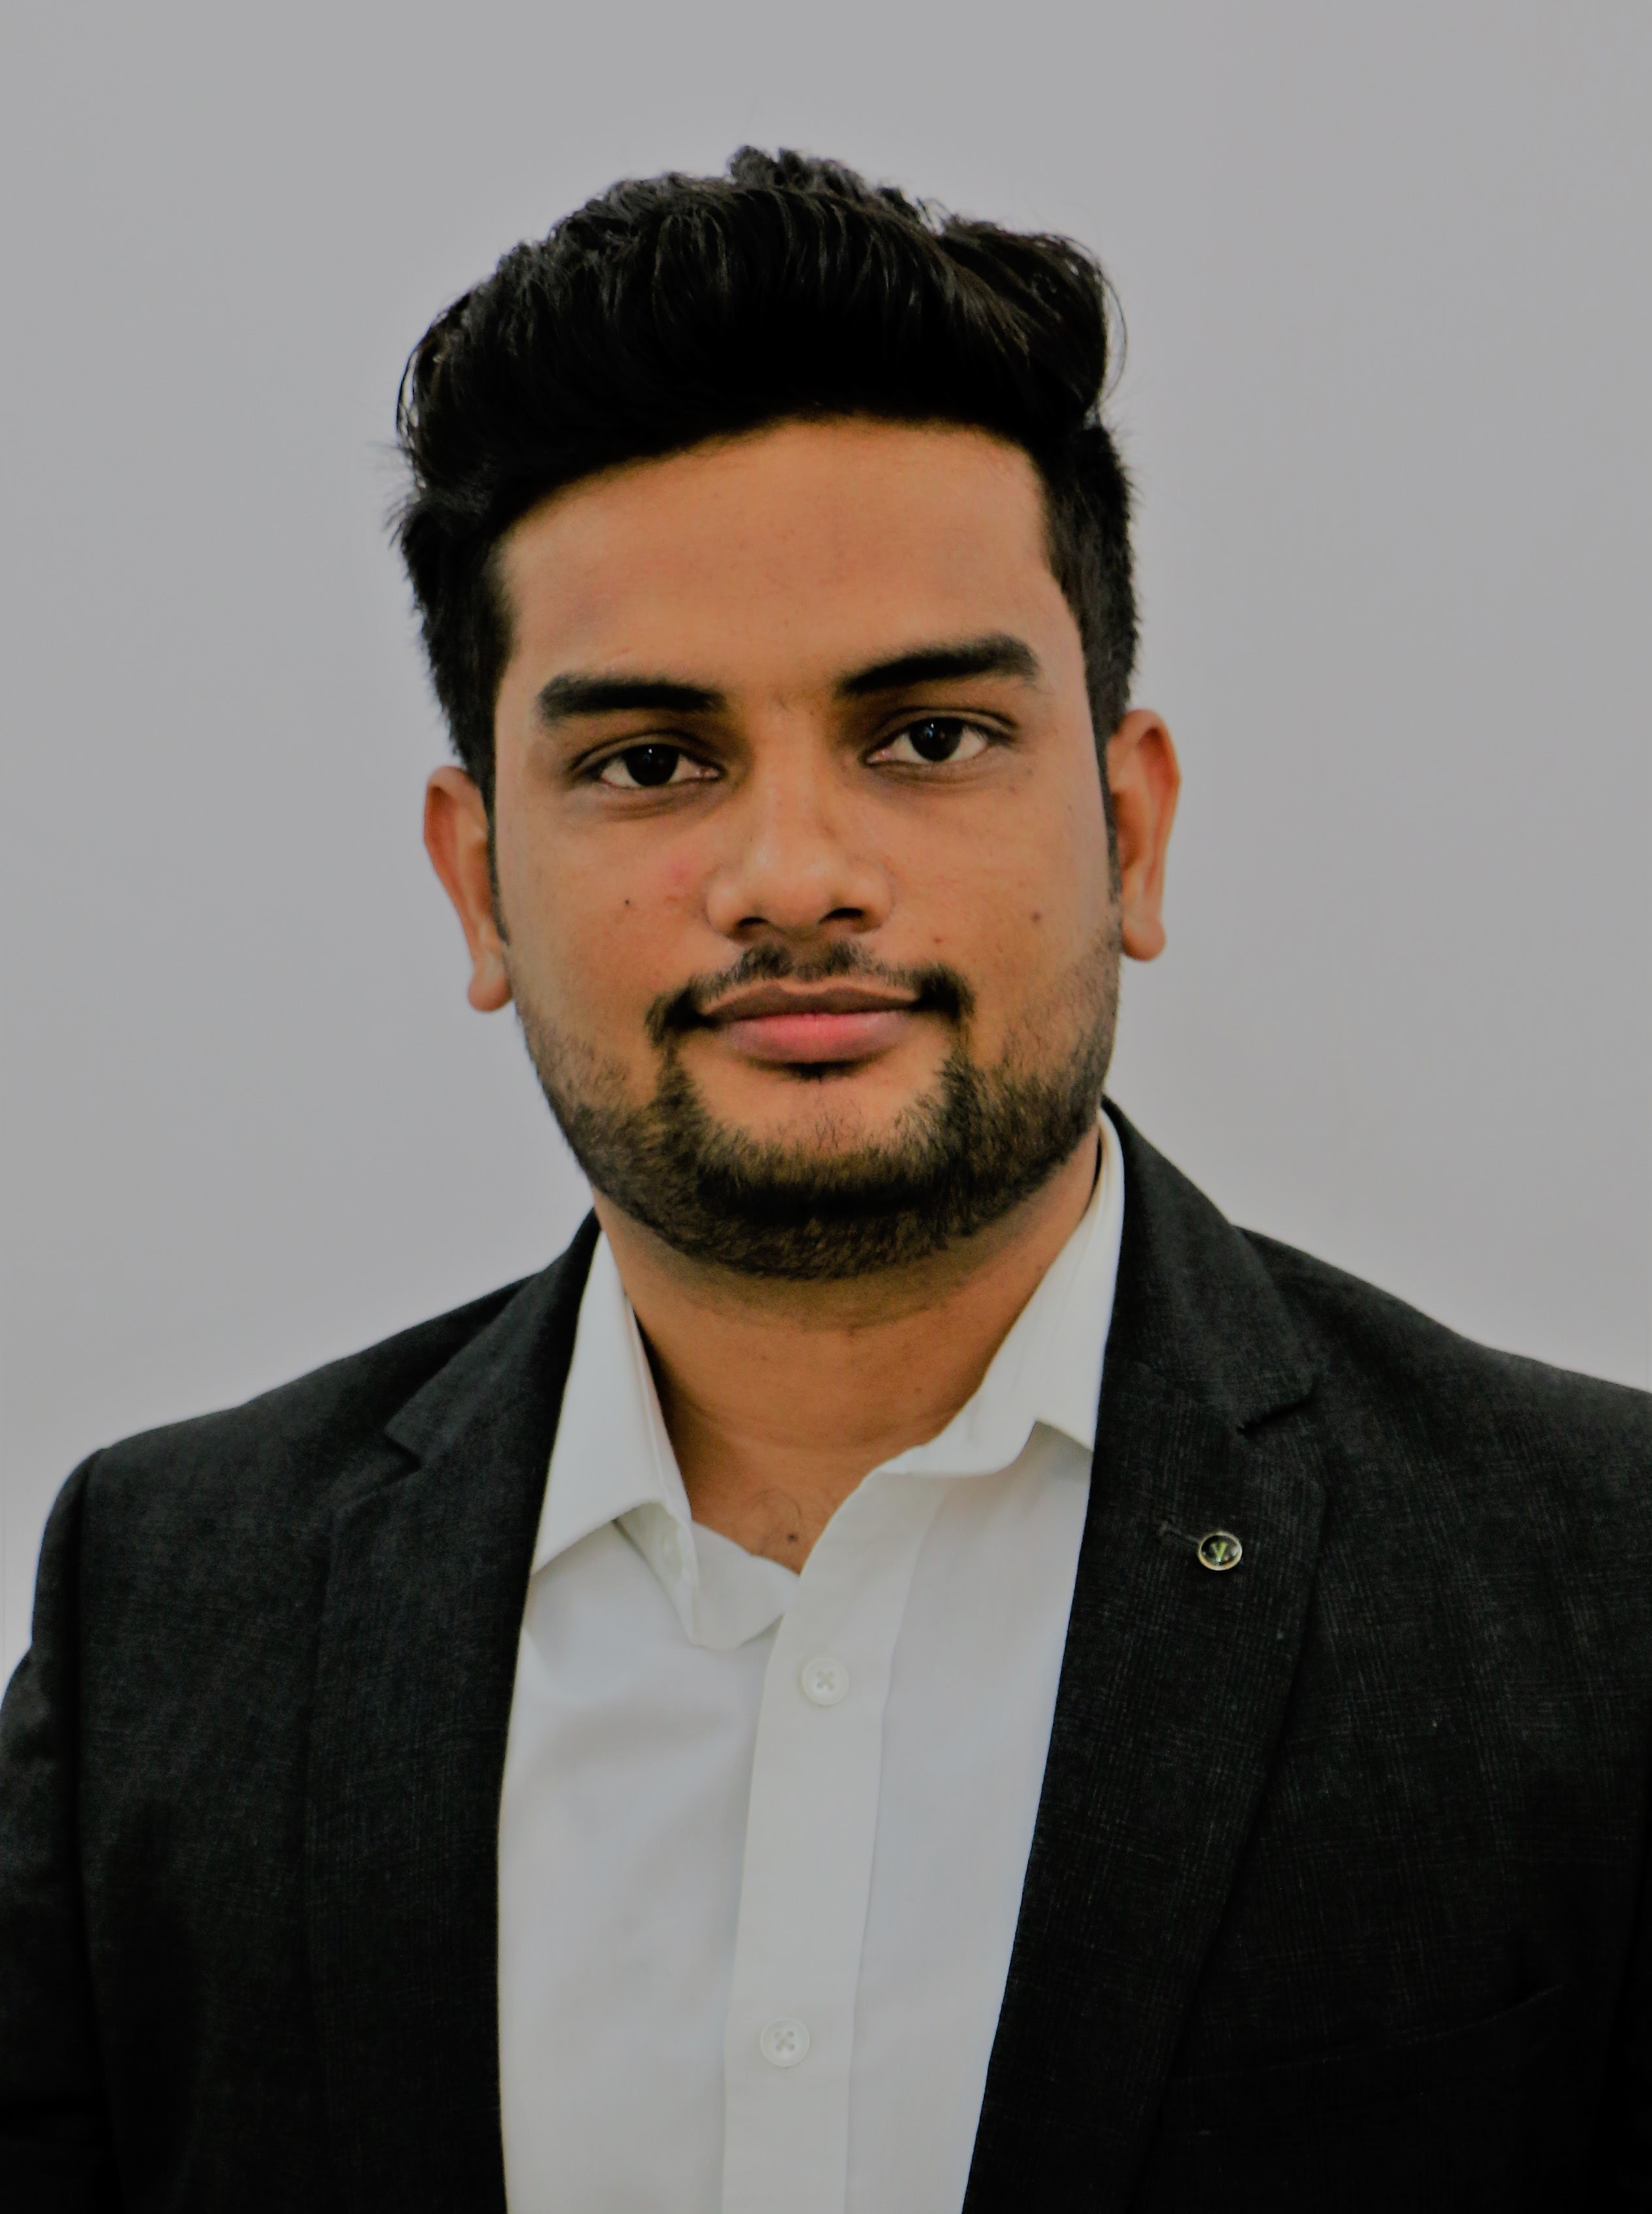 Shivam is a passionate Sales professional with years of experience in different Sales Environment. His zeal for creating value for the clients through consultative selling and helping them solve their business problems via innovative and disruptive solutions is his greatest strength as an entrepreneur.